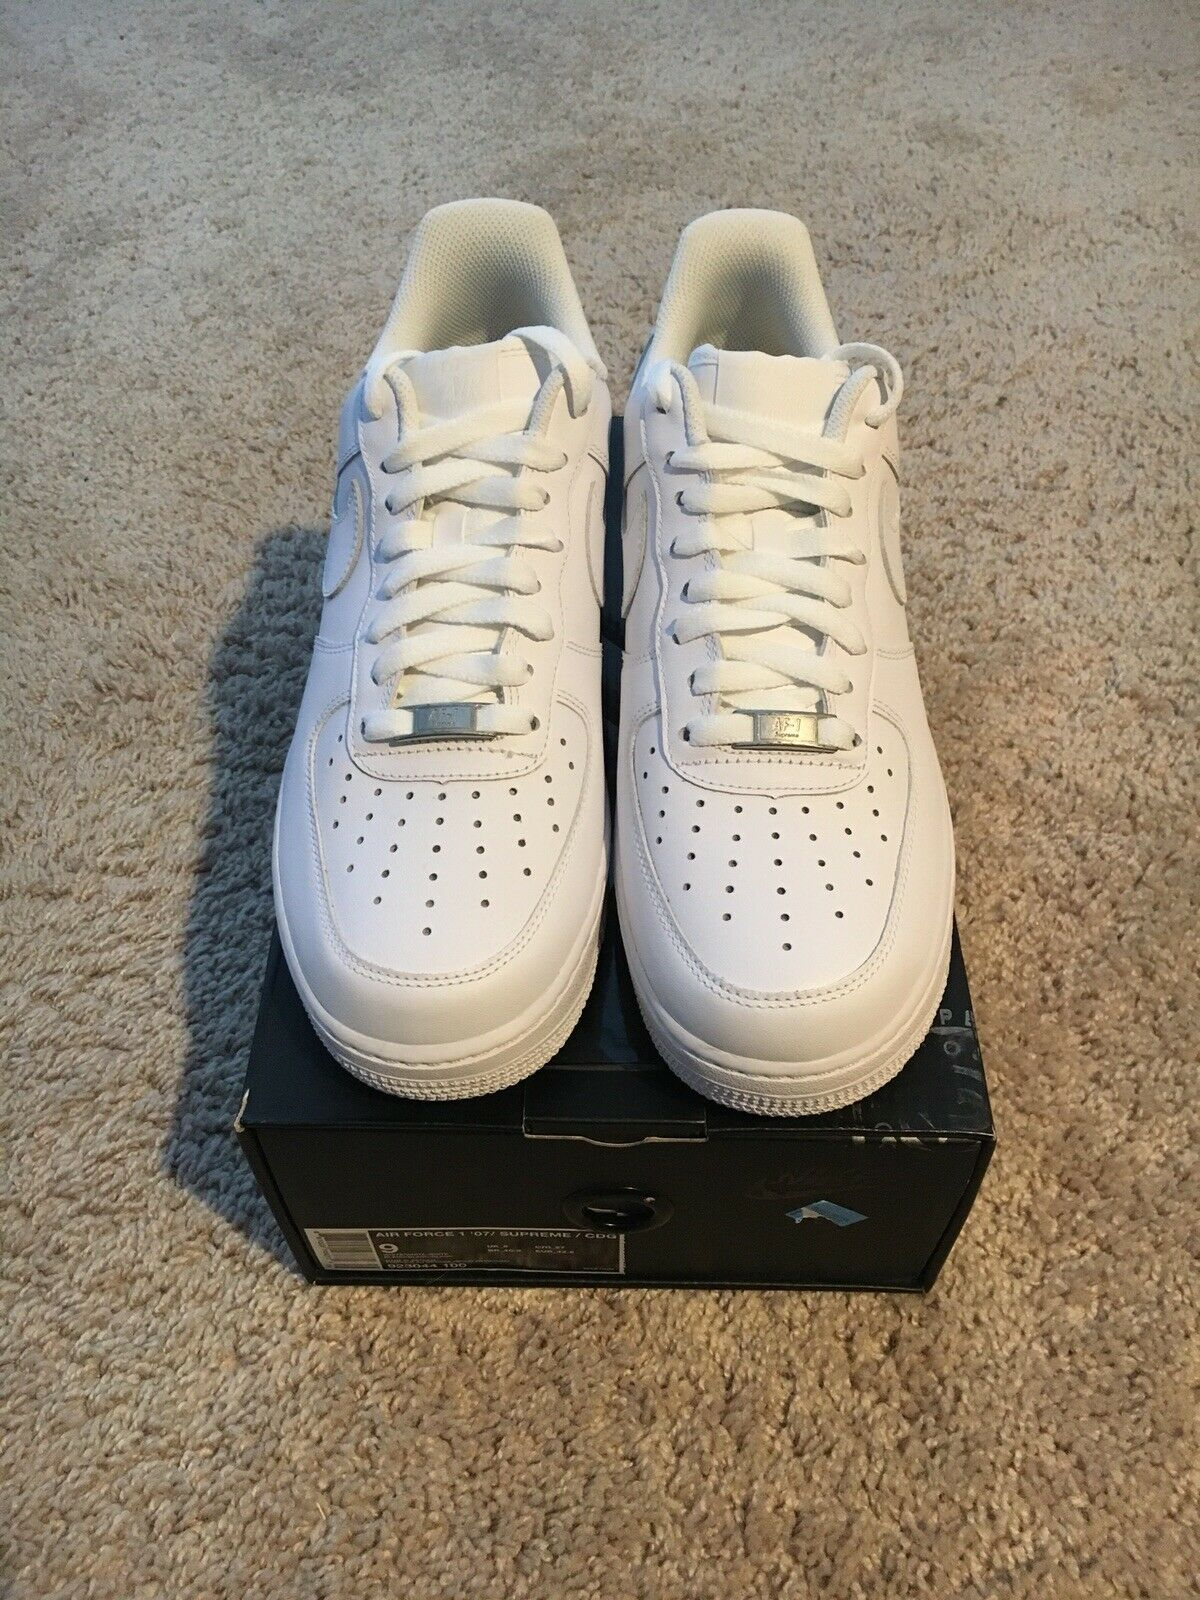 c7c539db4f1 SAMPLE Nike Supreme CDG Eyes AF1 Air Force Flaw Defect Stamp Promo 9 Factory  1 nxtjxy1924-Athletic Shoes